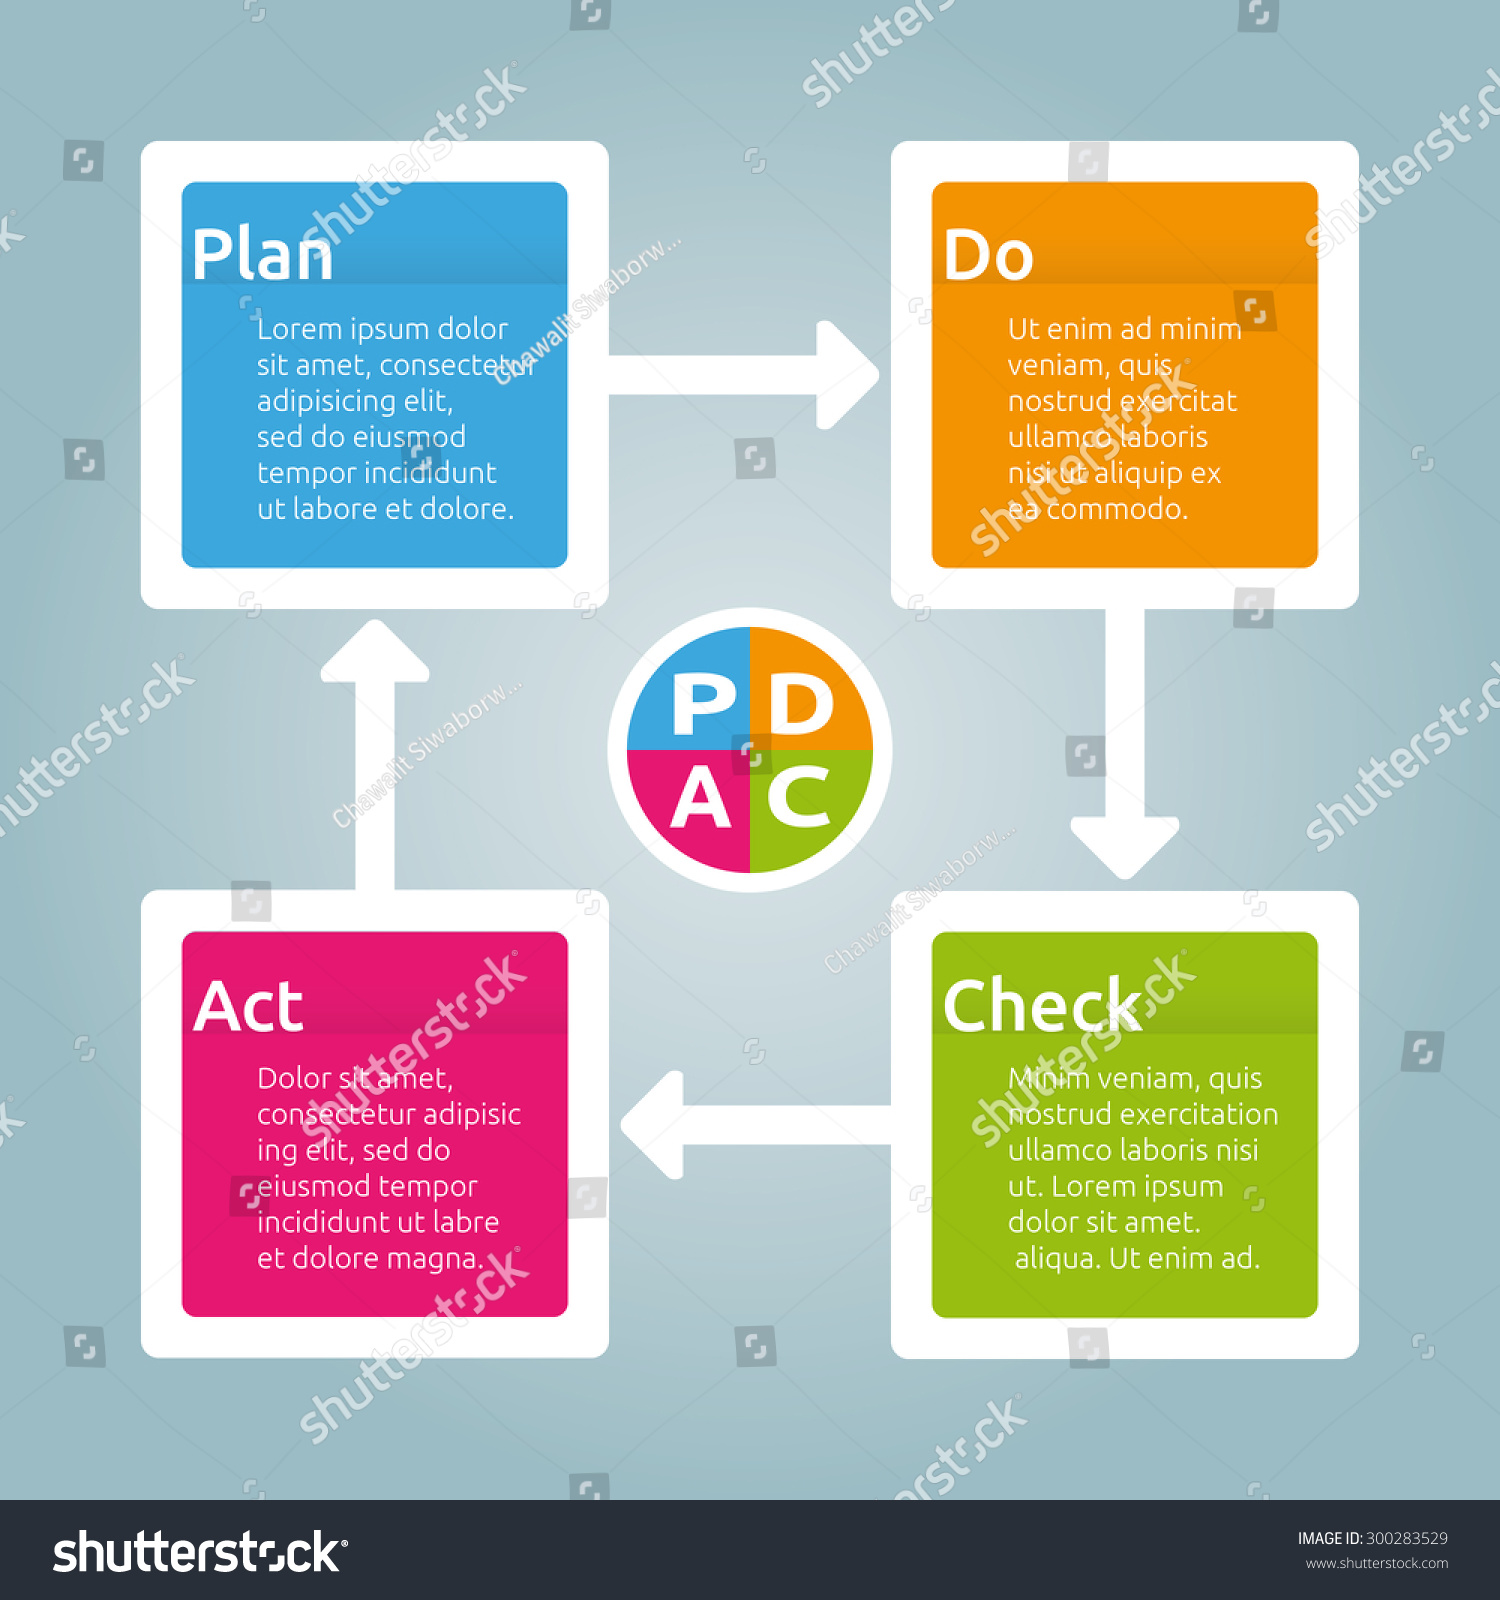 pdca diagram plan do check act stock vector shutterstock pdca diagram plan do check act four step workflow graphic elements